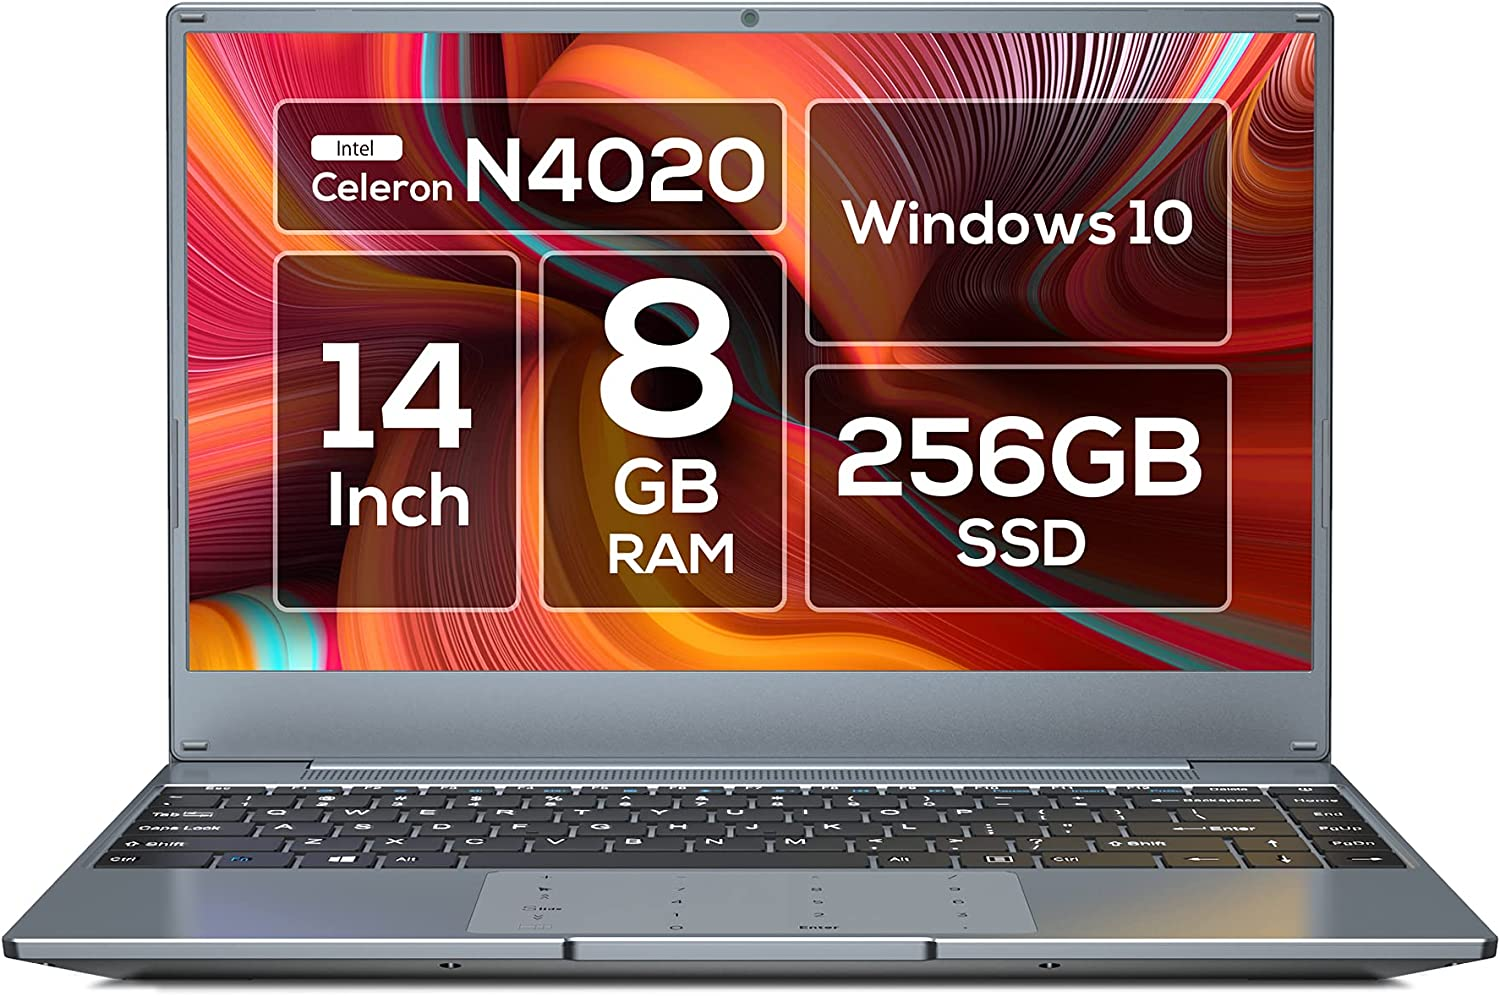 """Vastking 14"""" Windows 10 Laptop Computer, 8GB RAM 256GB SSD, Celeron N4020, up to 2.8 GHz, FHD 1920 x 1080 Display, Compact Design, 5G WiFi, NumberPad, Type C, Supports 128GB SD Card, Silver Gray"""